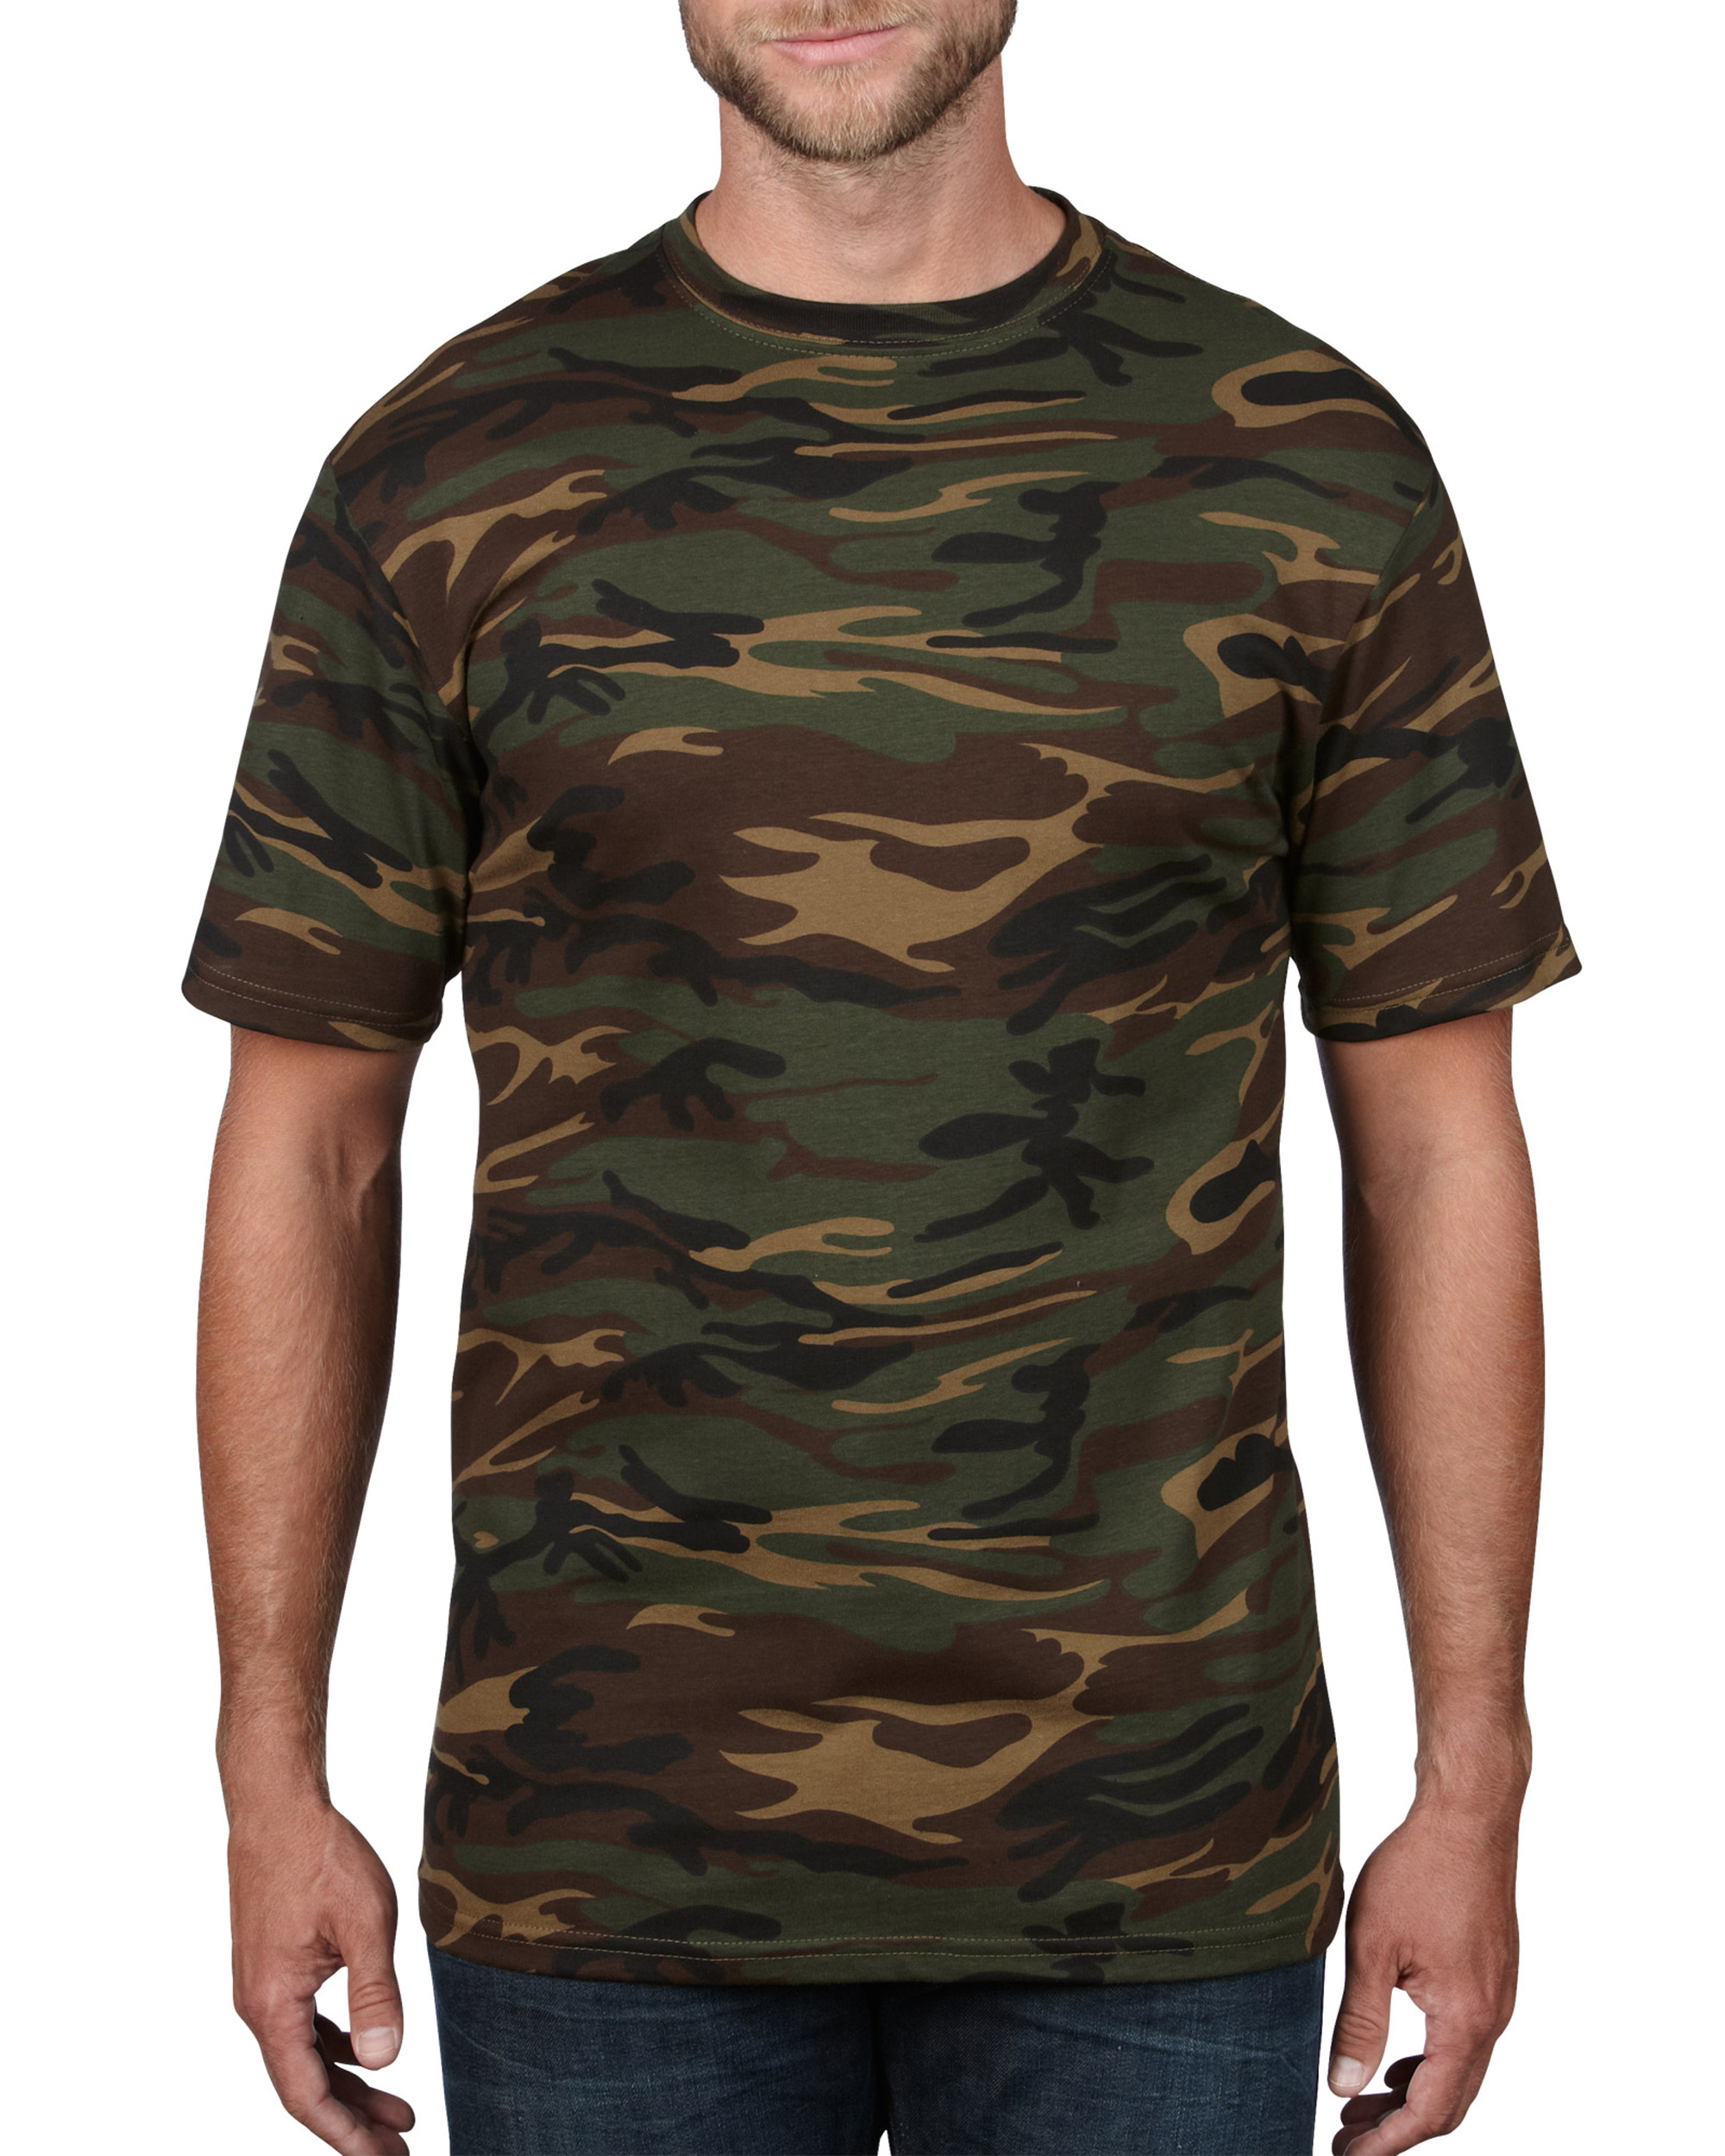 Anvil T-shirt Camouflage